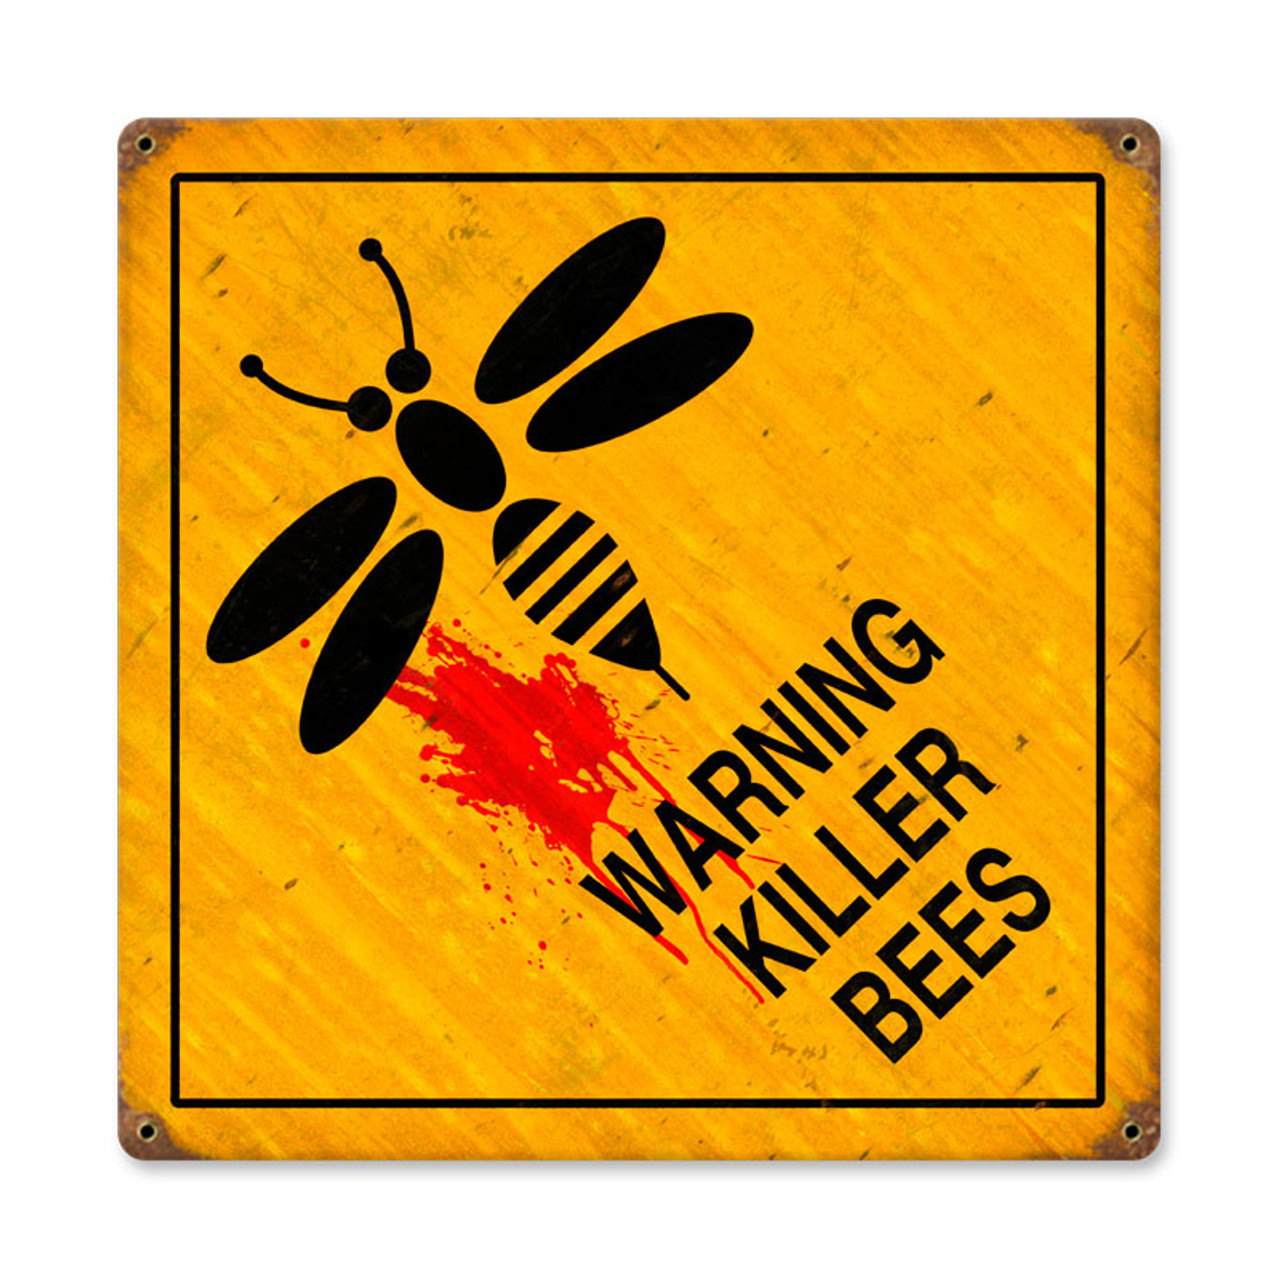 Retro Killer Bees  Metal Sign   12 x 12 Inches